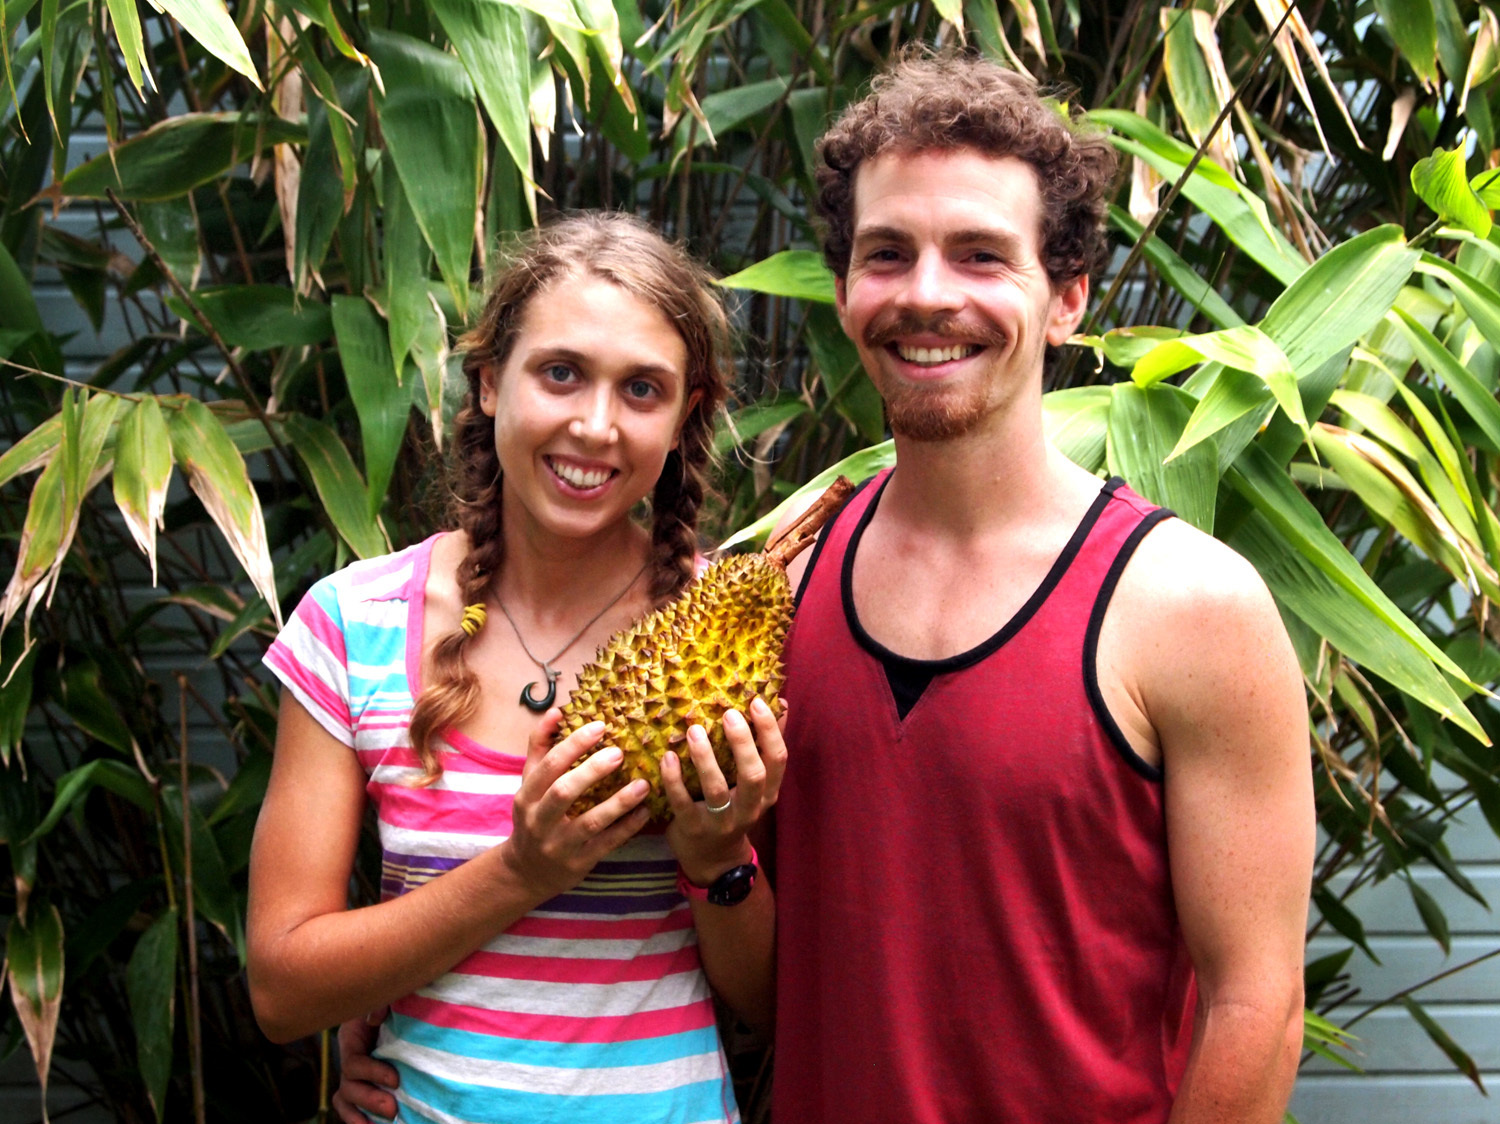 Lindsay Gasik and Rob Culclasure moved to Asia in 2012 to pursue durians. Photo: Courtesy of Lindsay Gasik